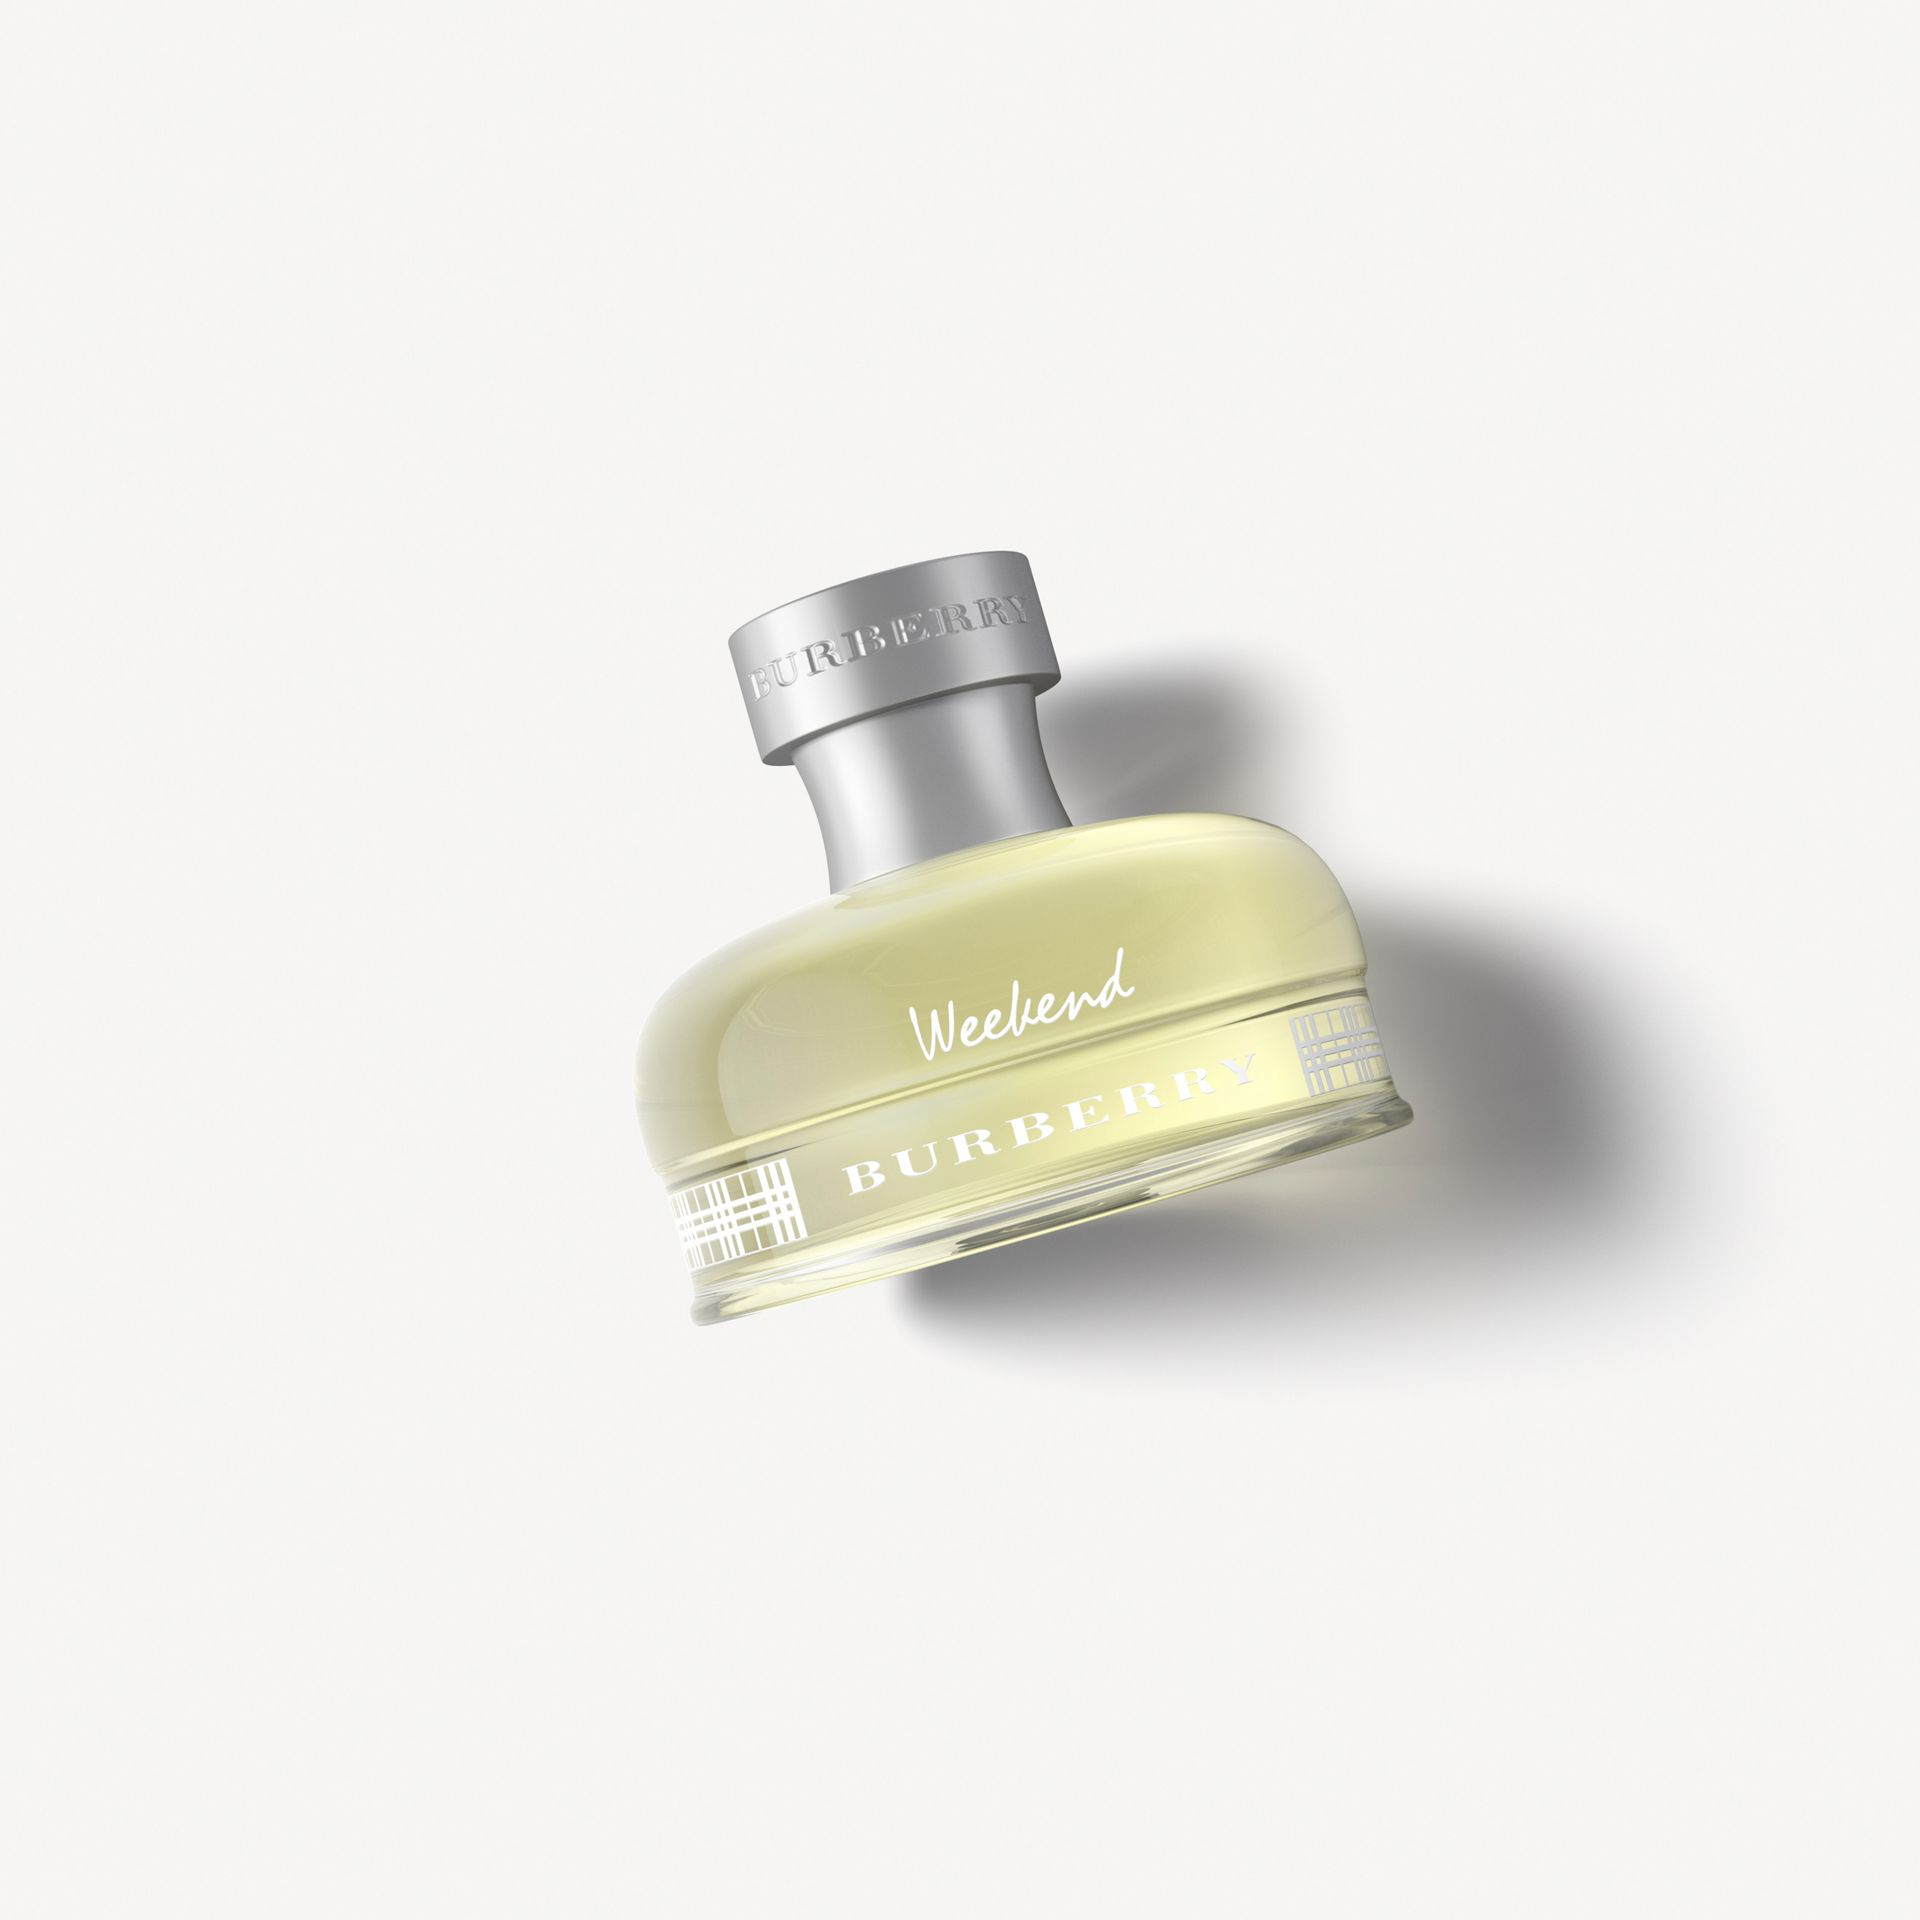 Burberry Weekend Eau de Parfum 50ml - Women | Burberry Hong Kong - gallery image 0